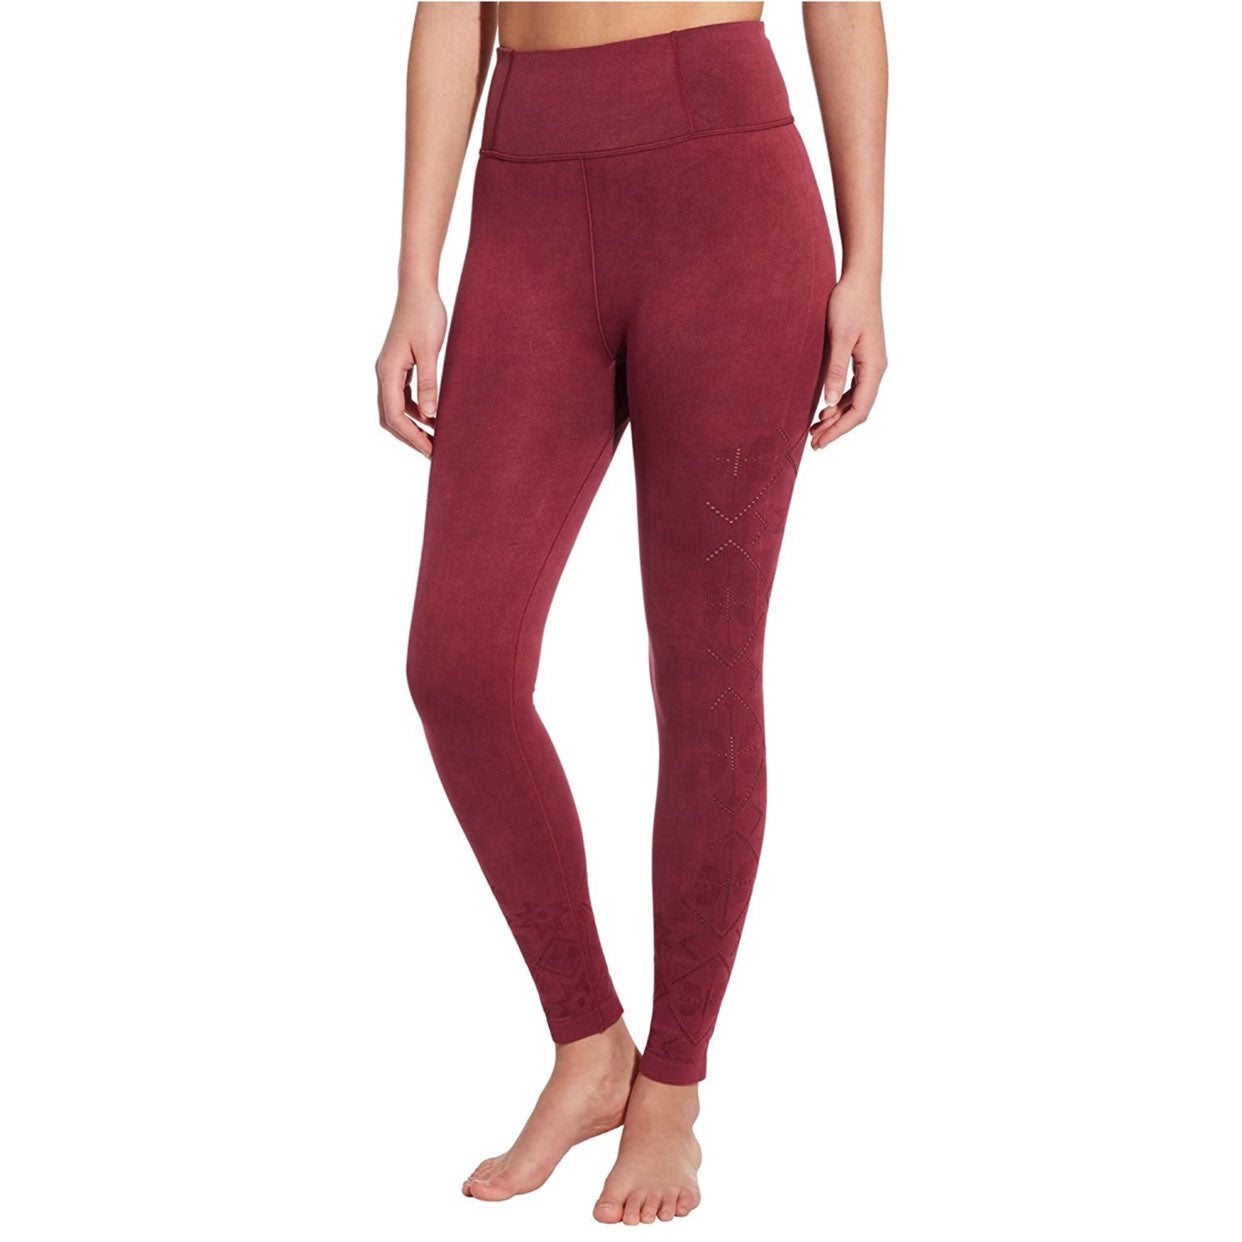 S CALIA Seamless High Rise Leggings Red